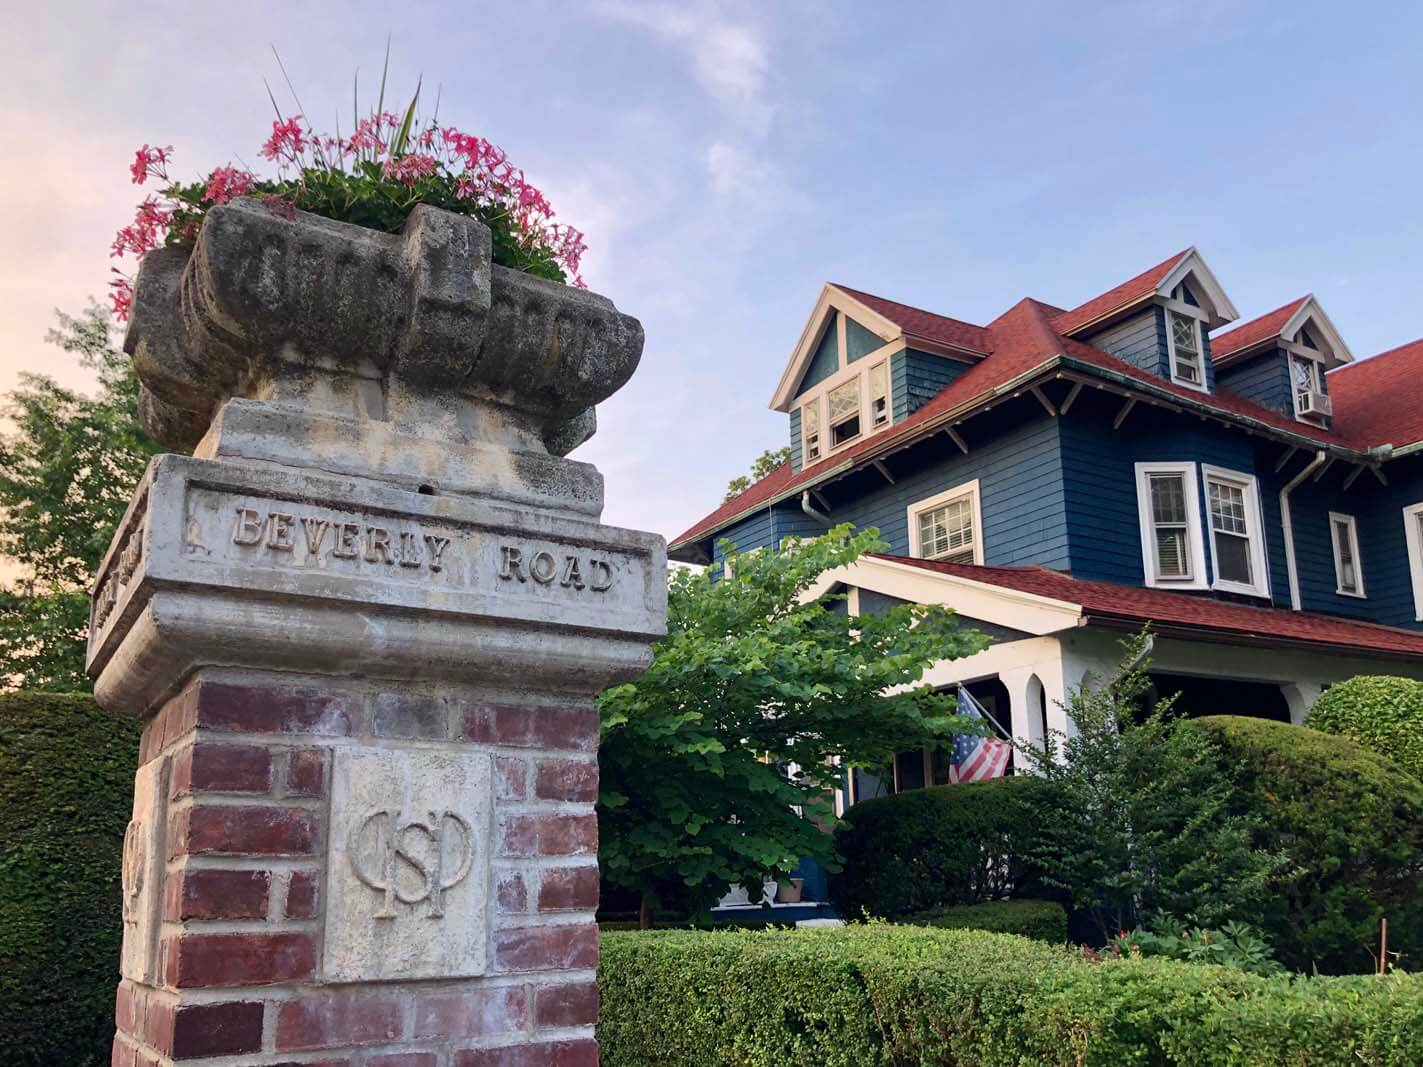 Historic Landmark Beverly Road in Ditmas Park and Victorian Flatbush Brooklyn